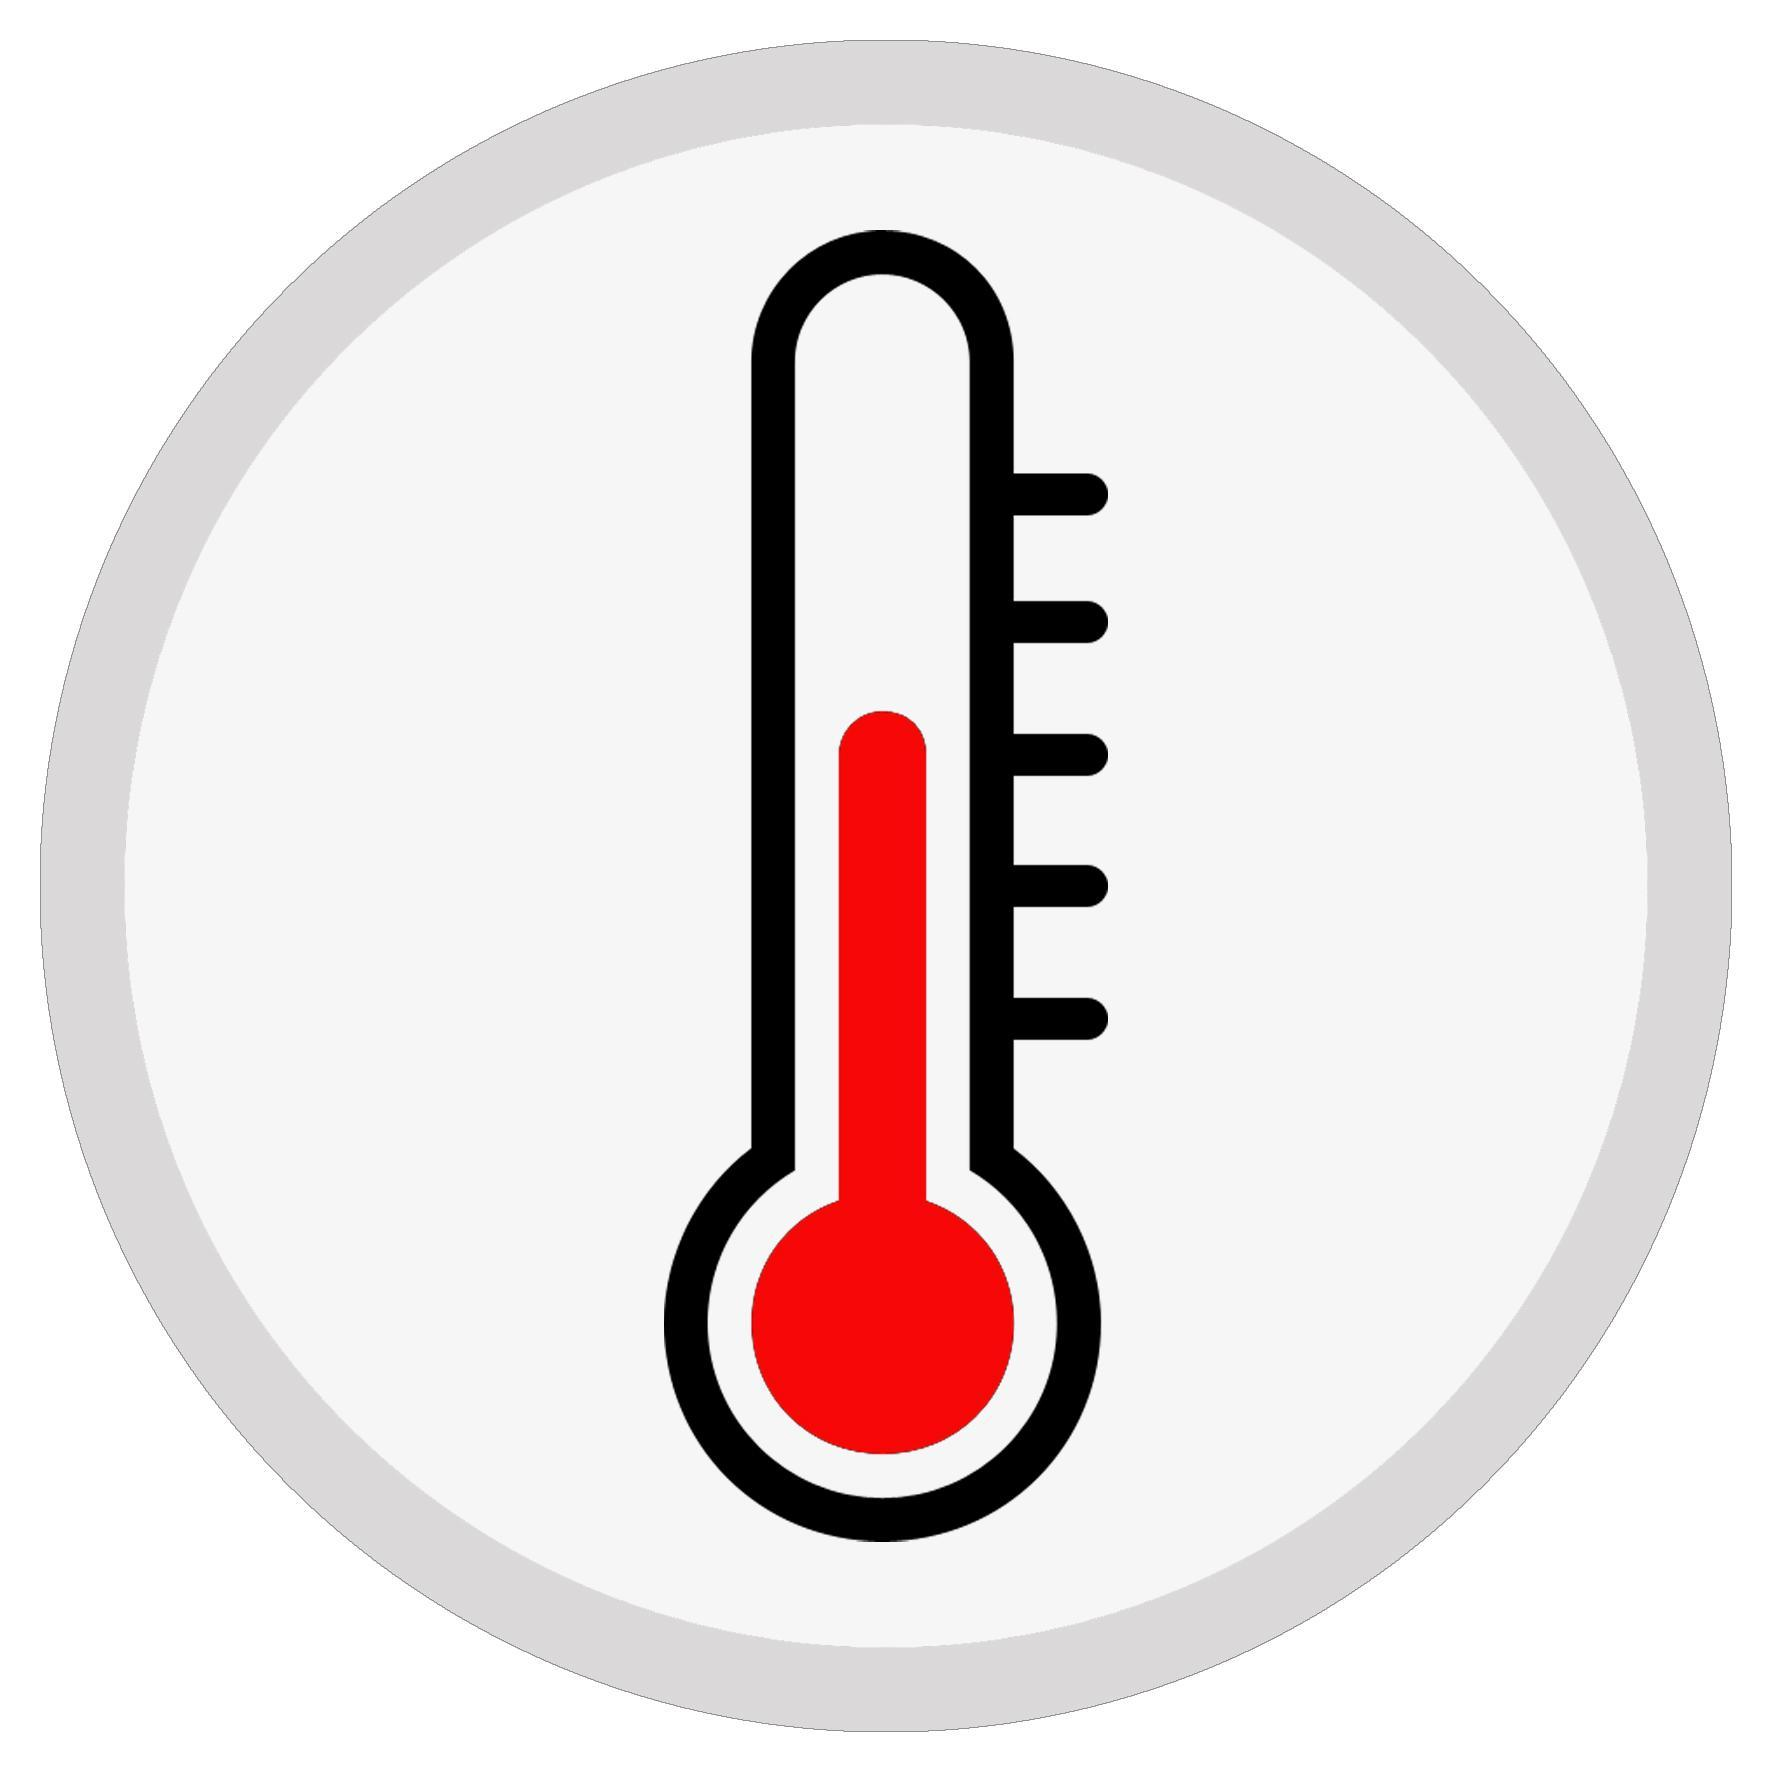 What's the right temperature that a house needs to be in general?